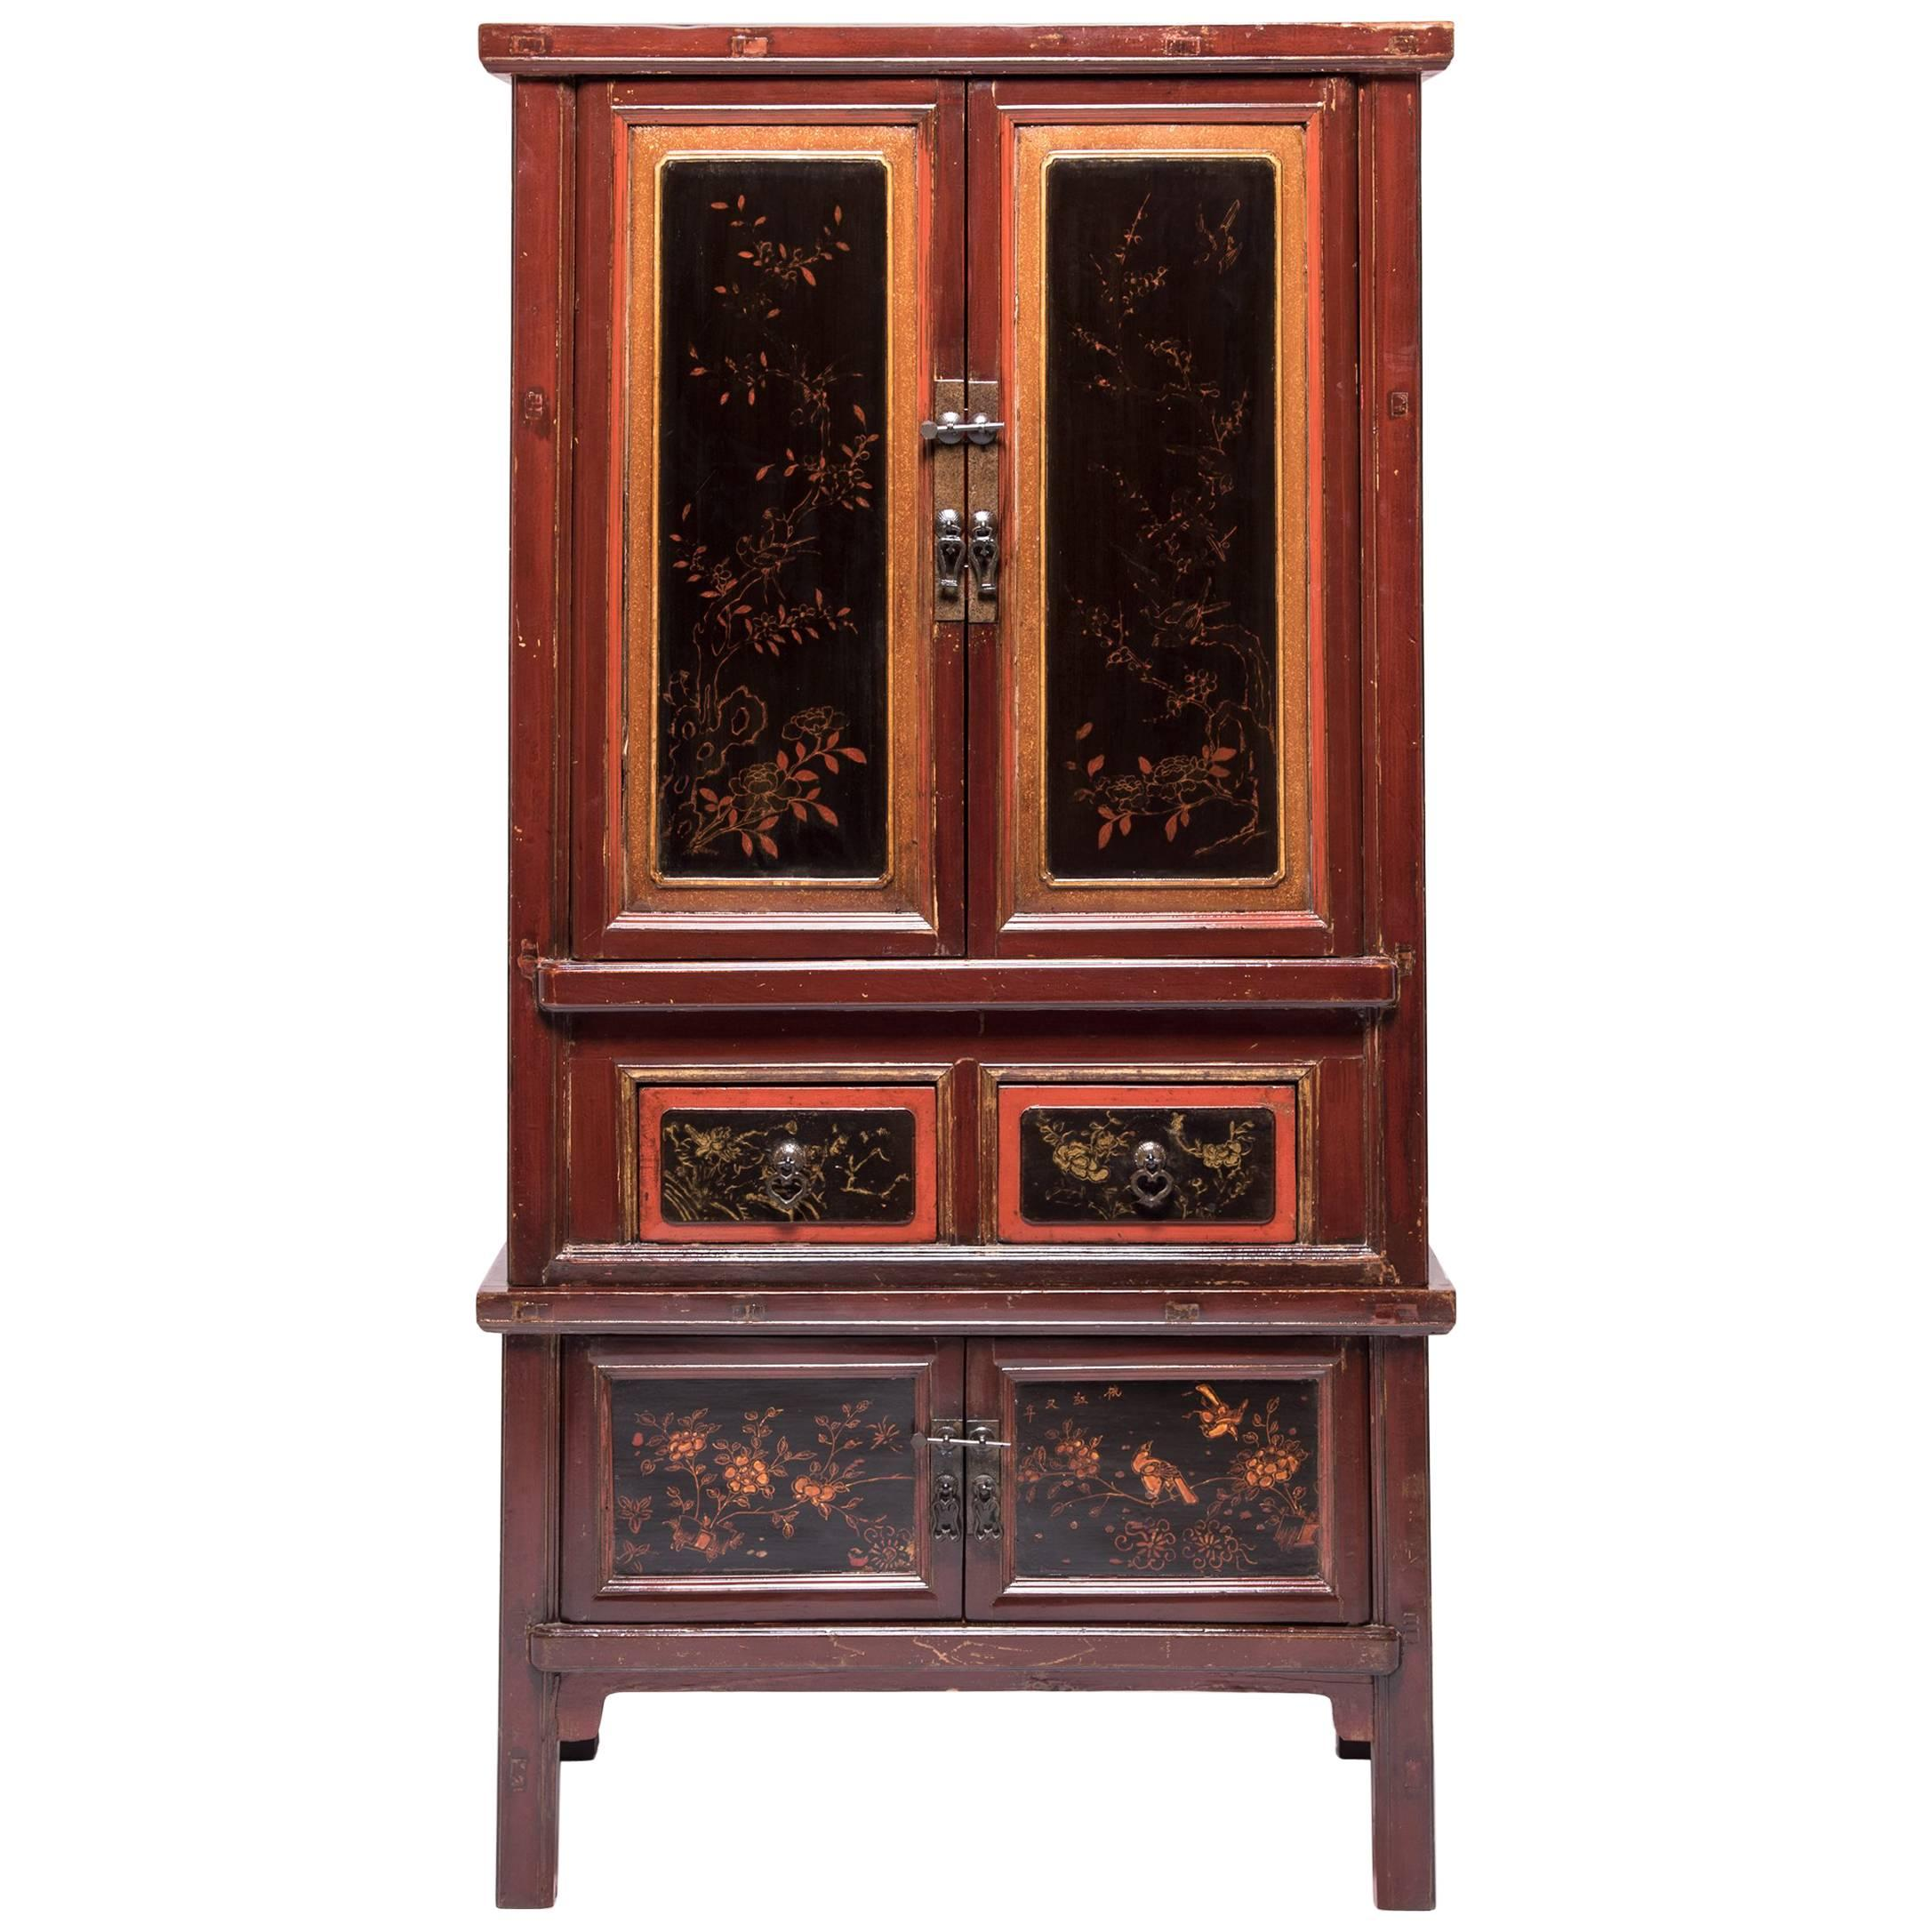 Chinese Gilt Red Lacquer Cabinet, c. 1900